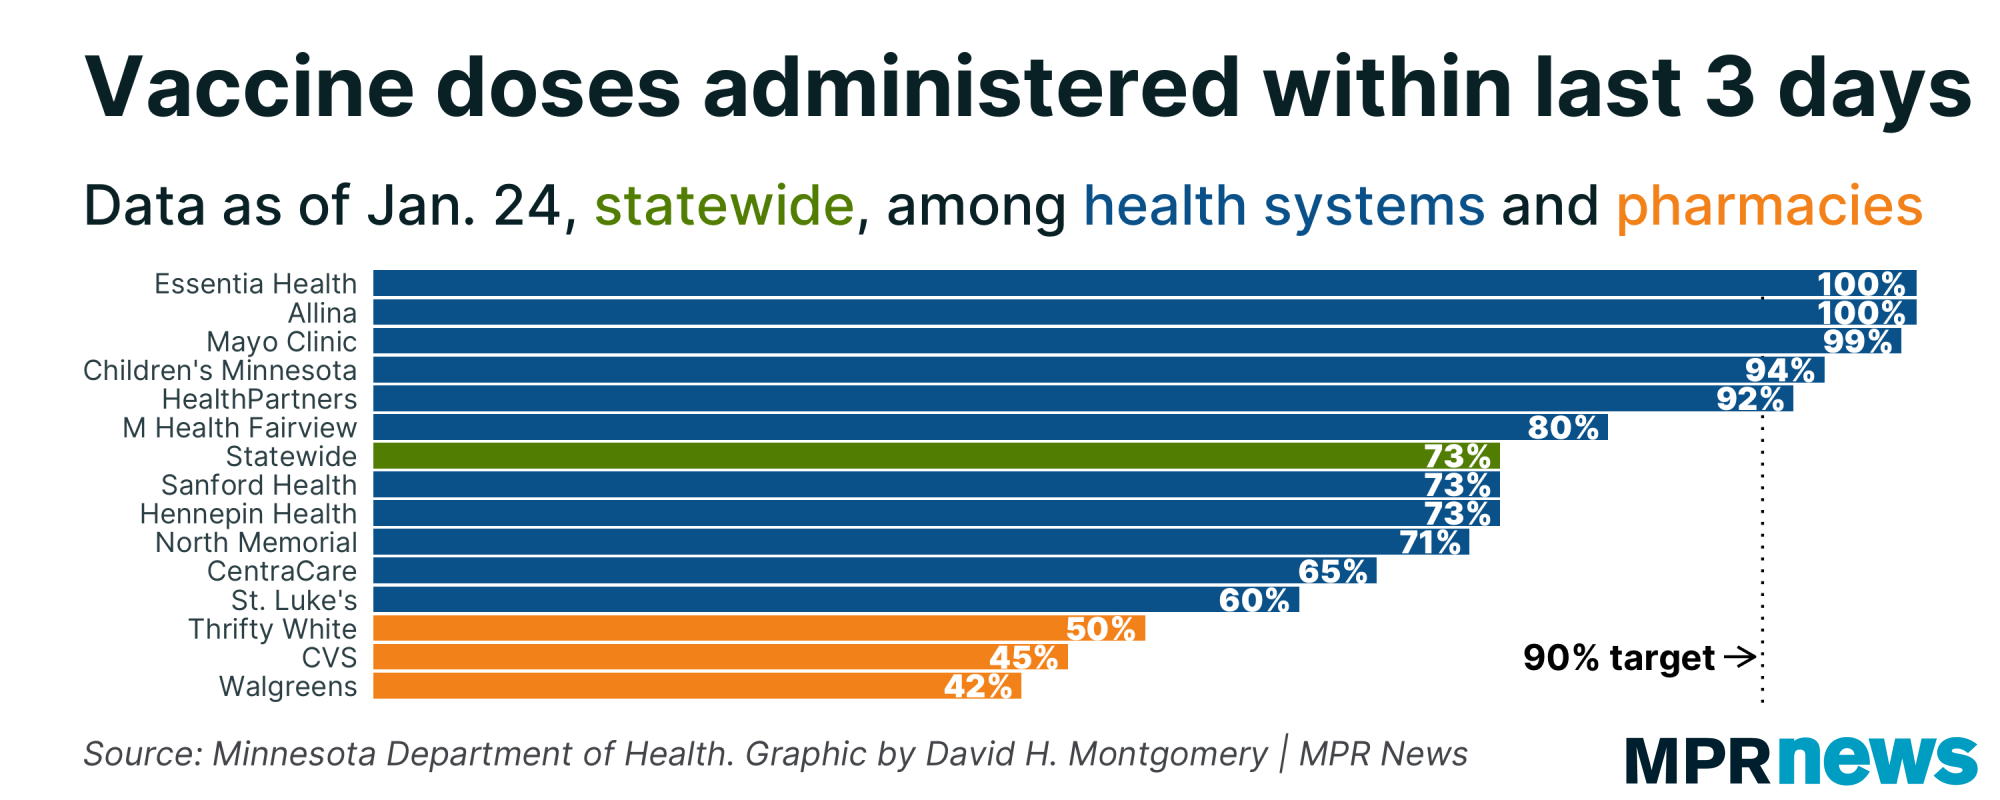 Share of vaccine doses administered within the last three days